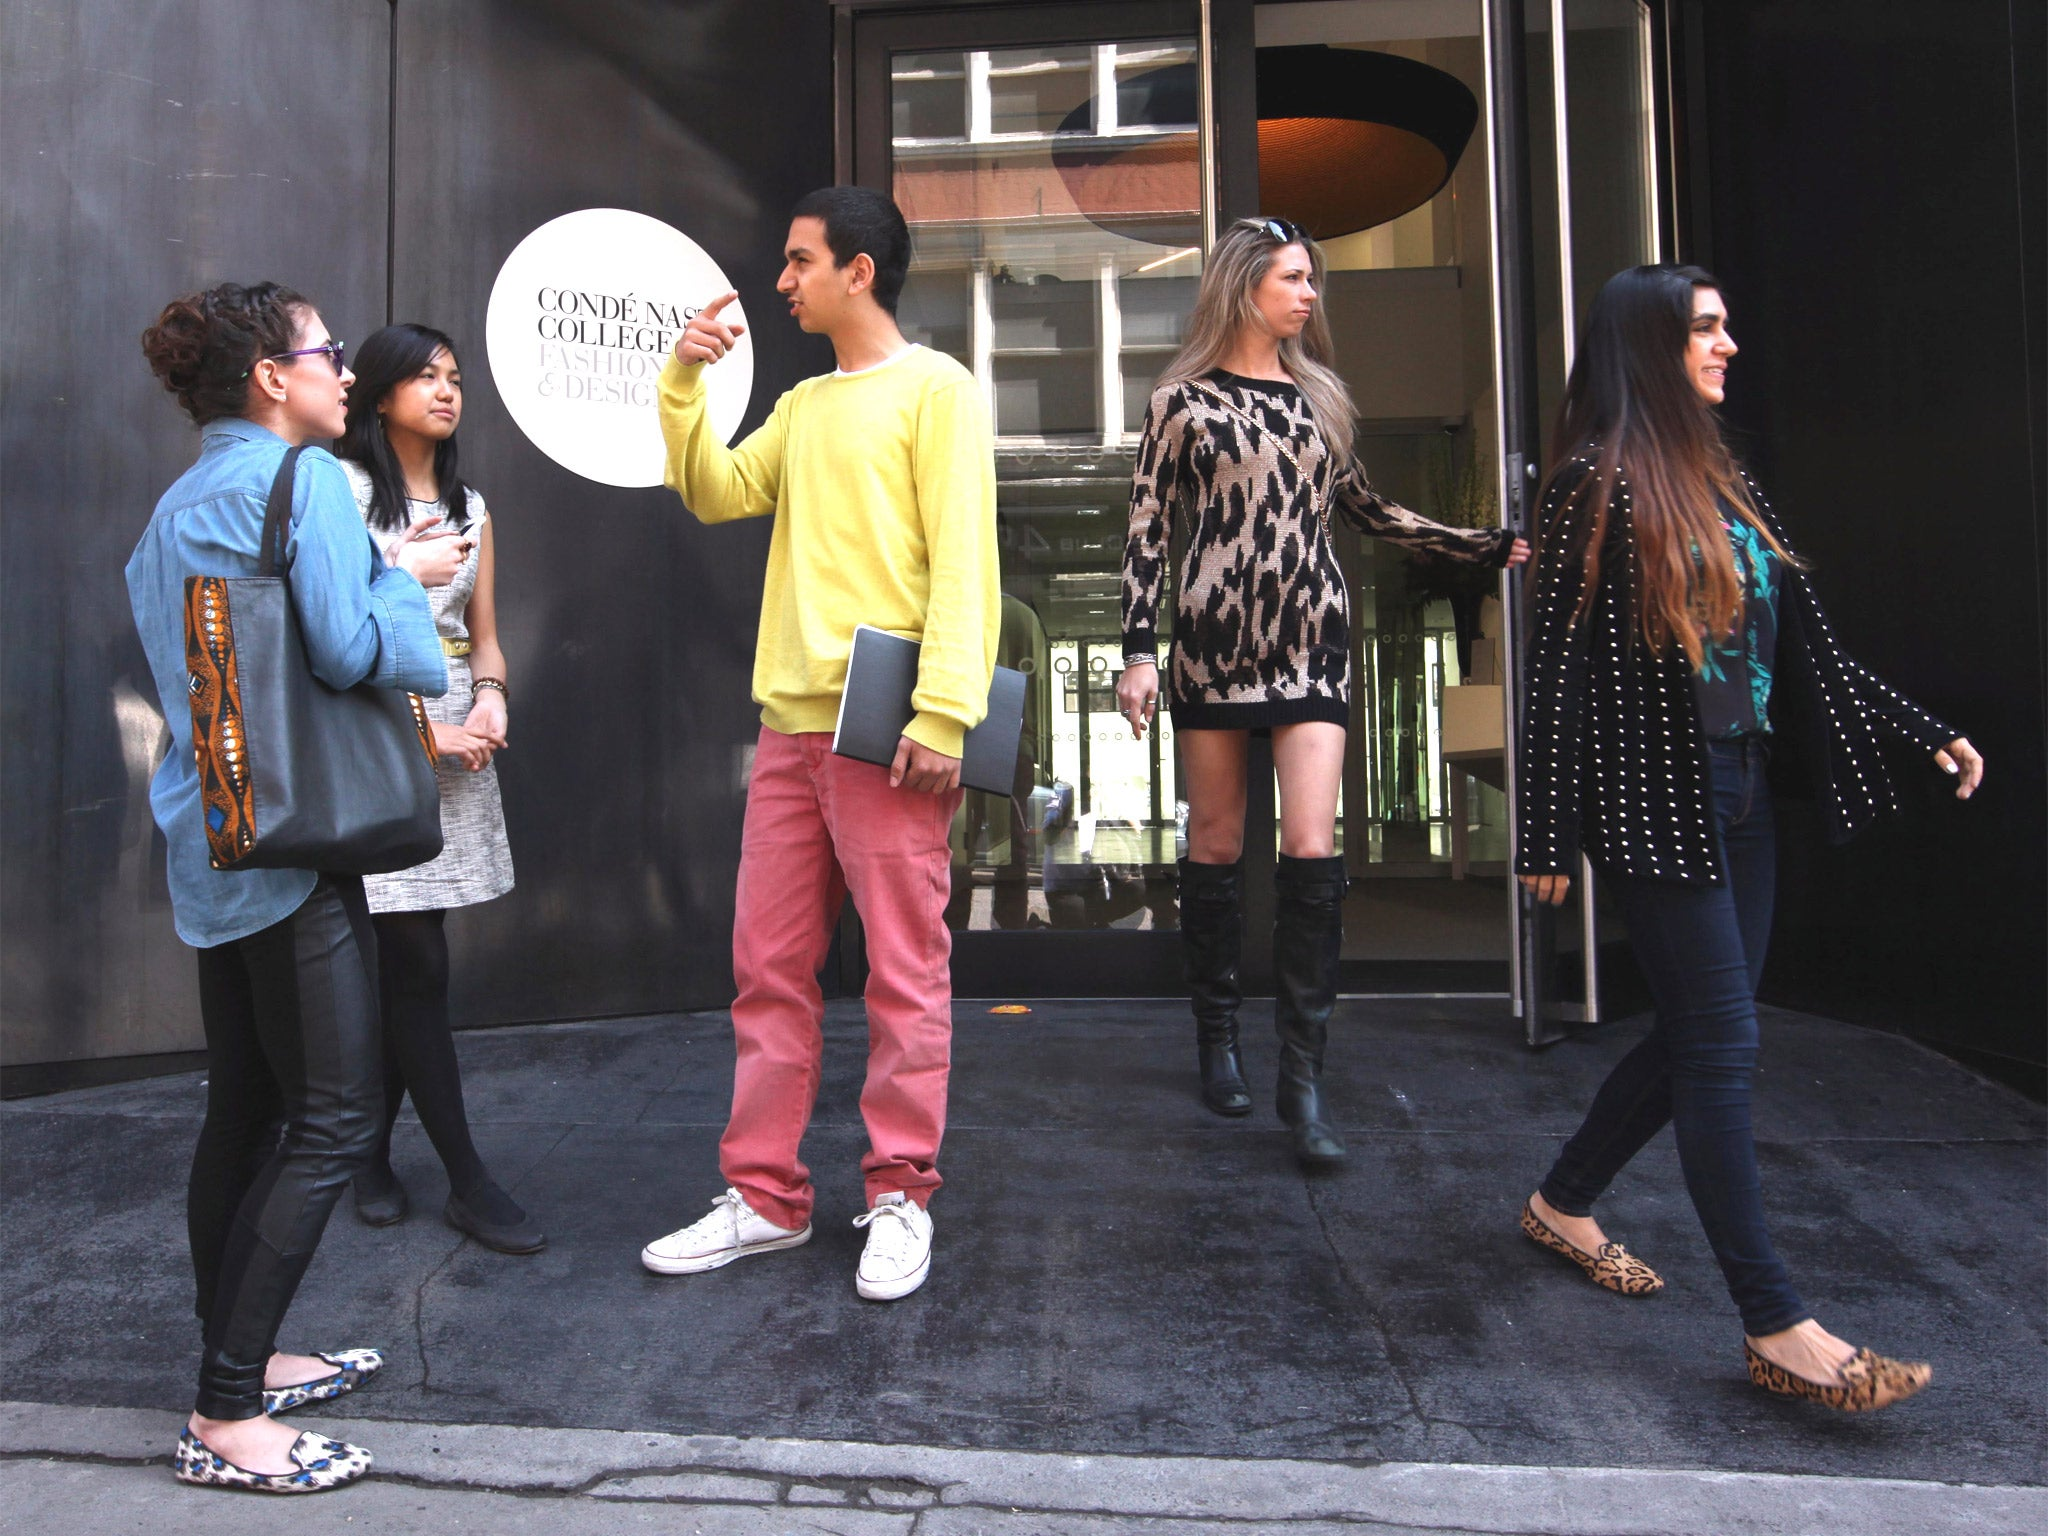 Watch - Nast conde to launch a fashion college video